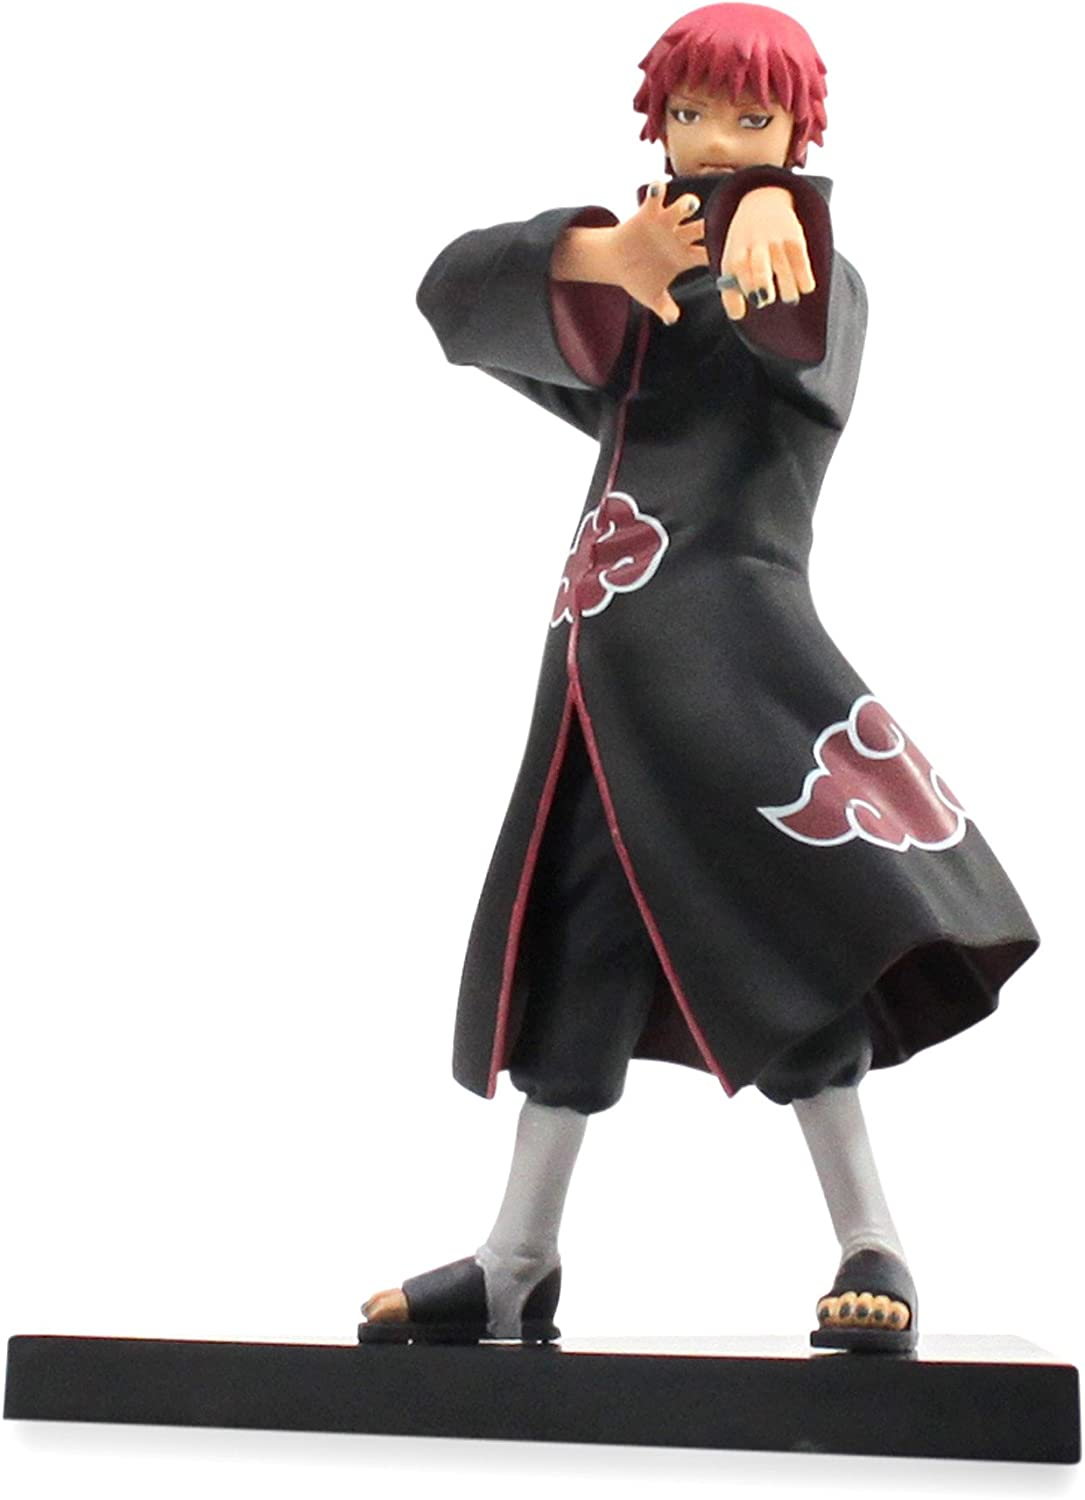 Amazon.com: Naruto Shippuden DX Figure Shinobi Relaciones ...